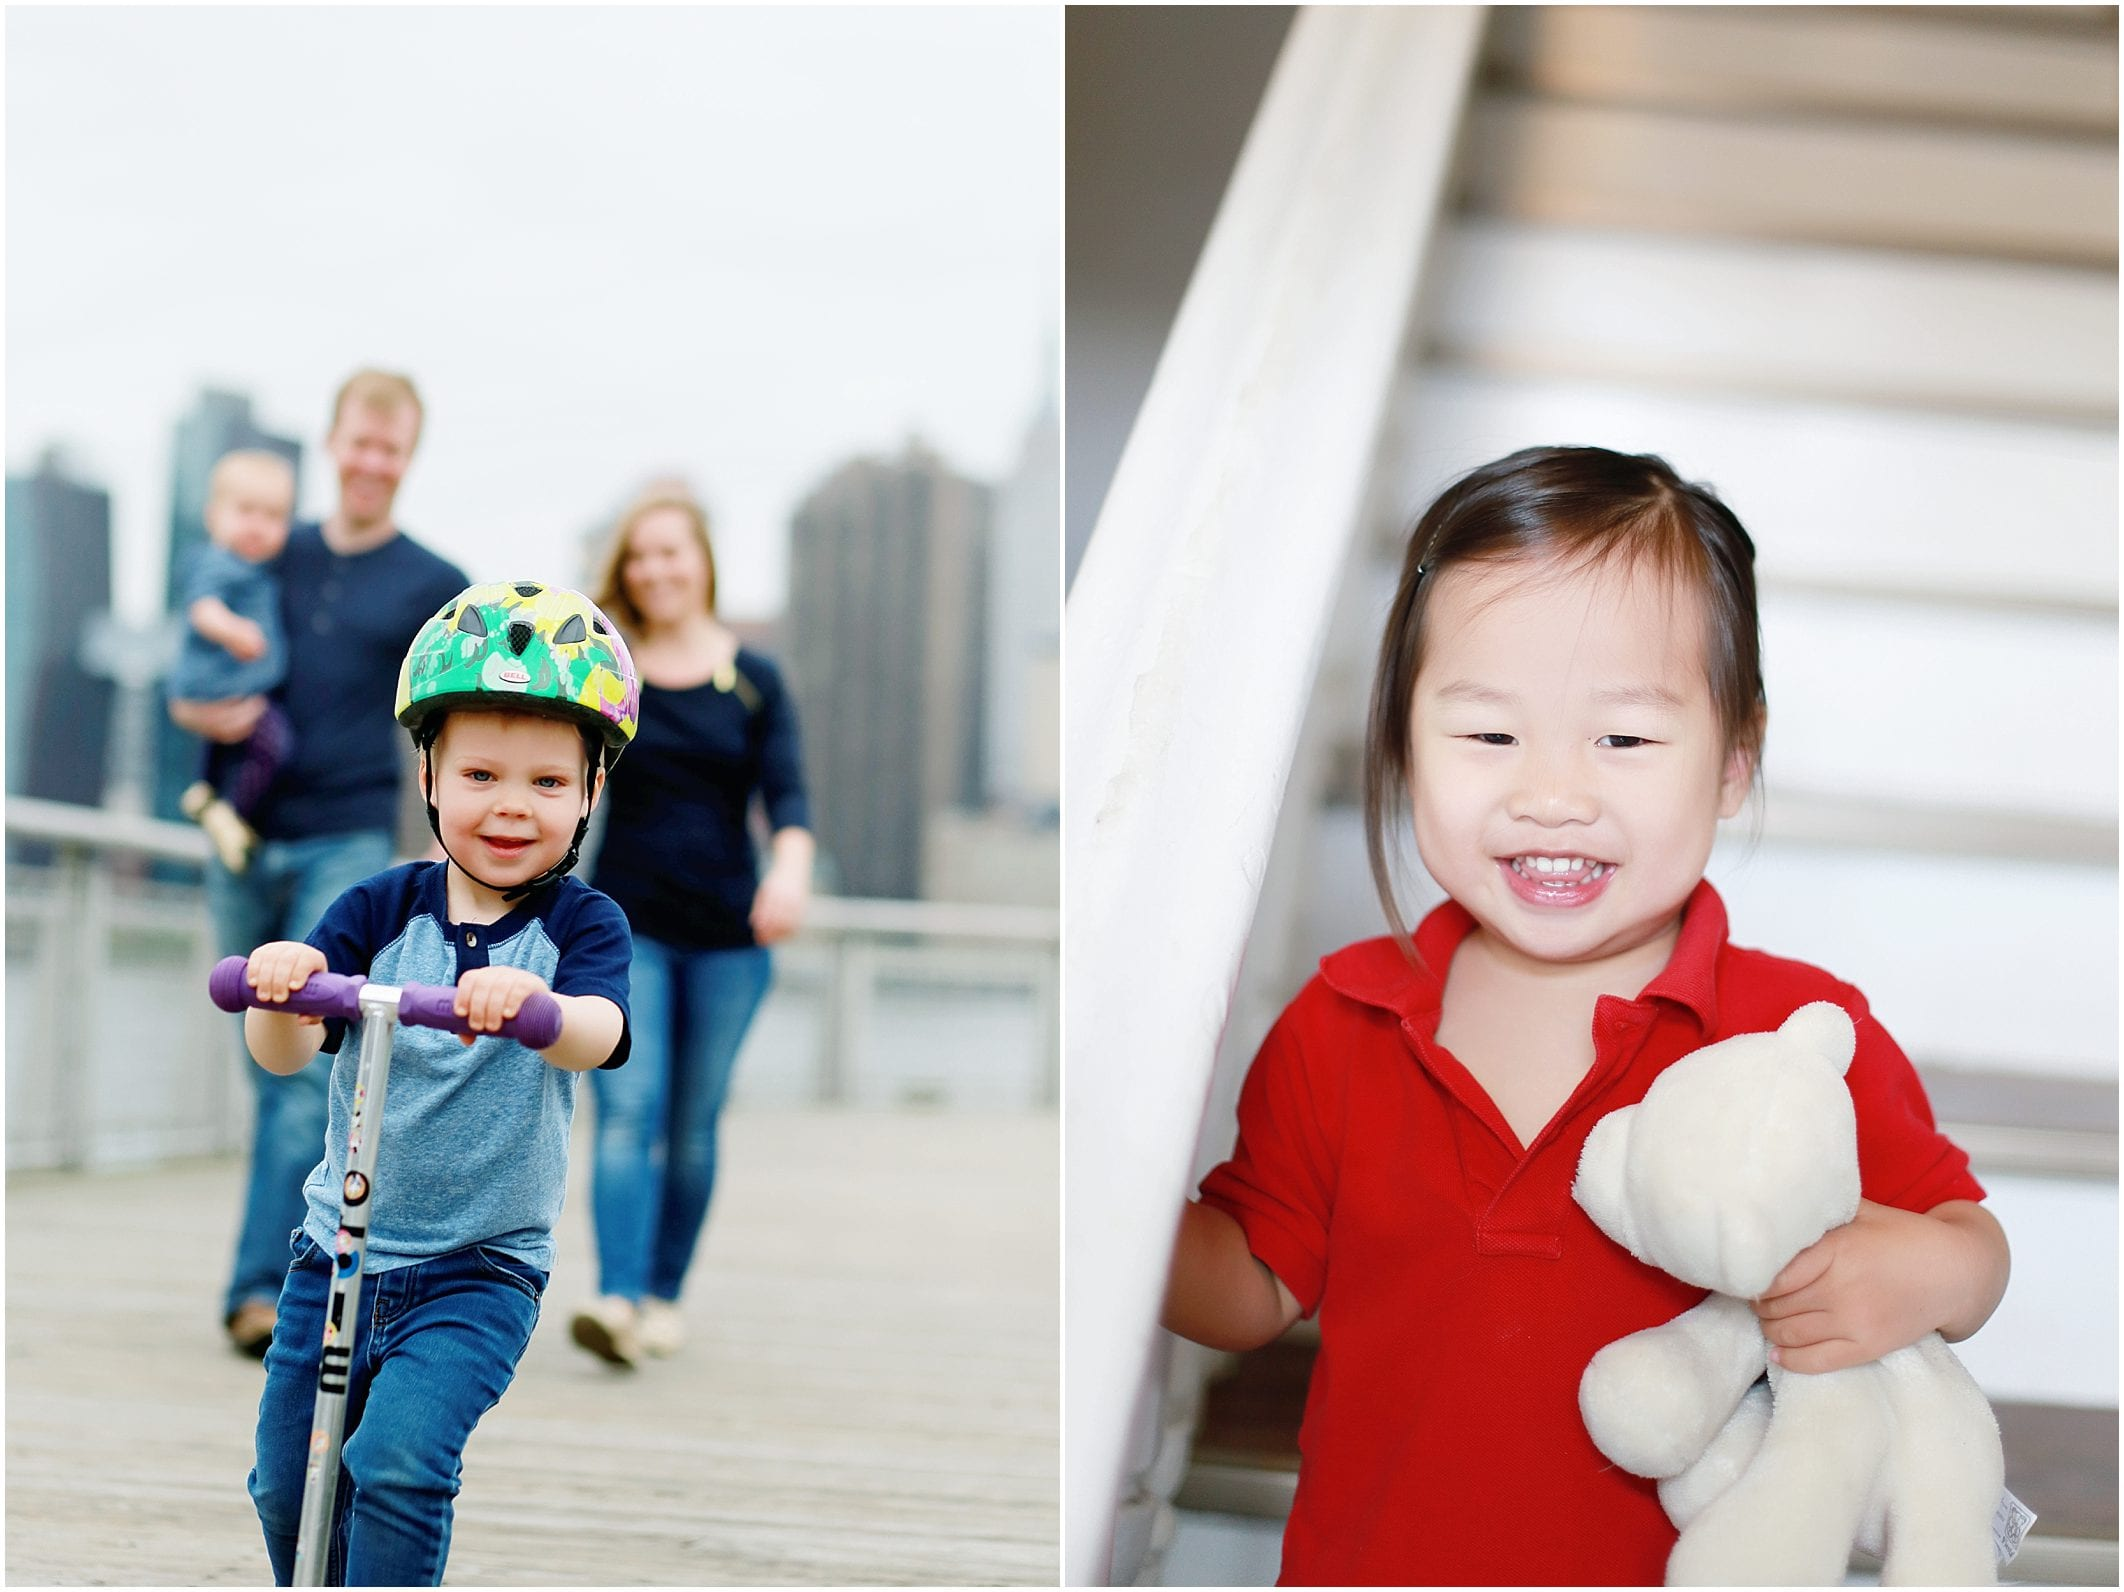 Children of New York: Helena Woods Destination Family Newborn Children's Portraiture shares her favorite sessions and kids in New York City. Locations featured: Central Park Gantry Plaza State Park Long Island Prospect Park Brooklyn